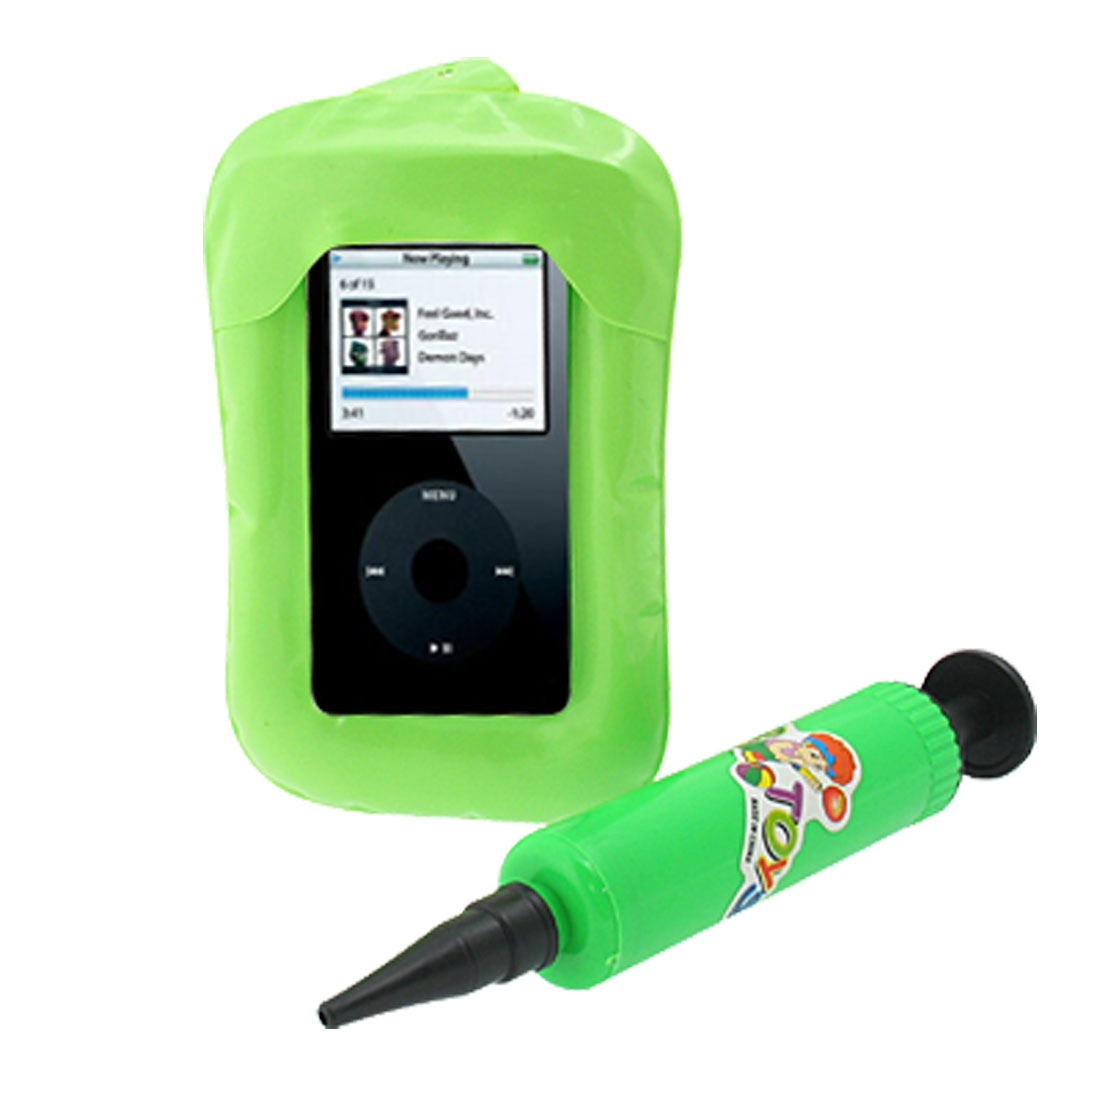 Inflatable Case Guard -Cyan Guard for iPod Nano Video Photo Rokmd